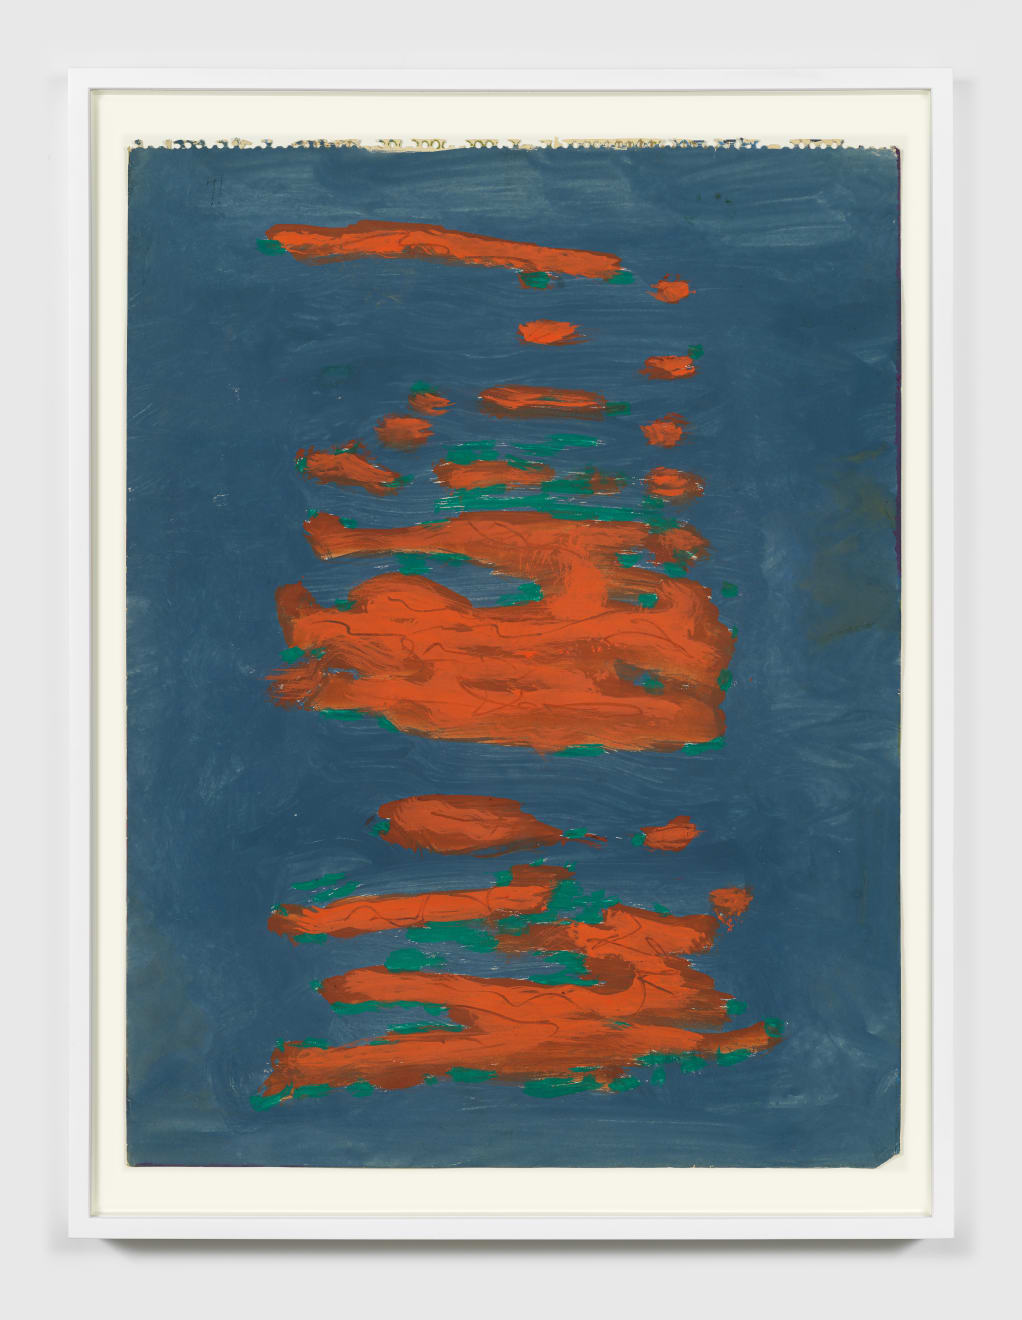 Betty Parsons Untitled, c.1976 Gouache on paper 23.25h x 18w in (59.05h x 45.72w cm)